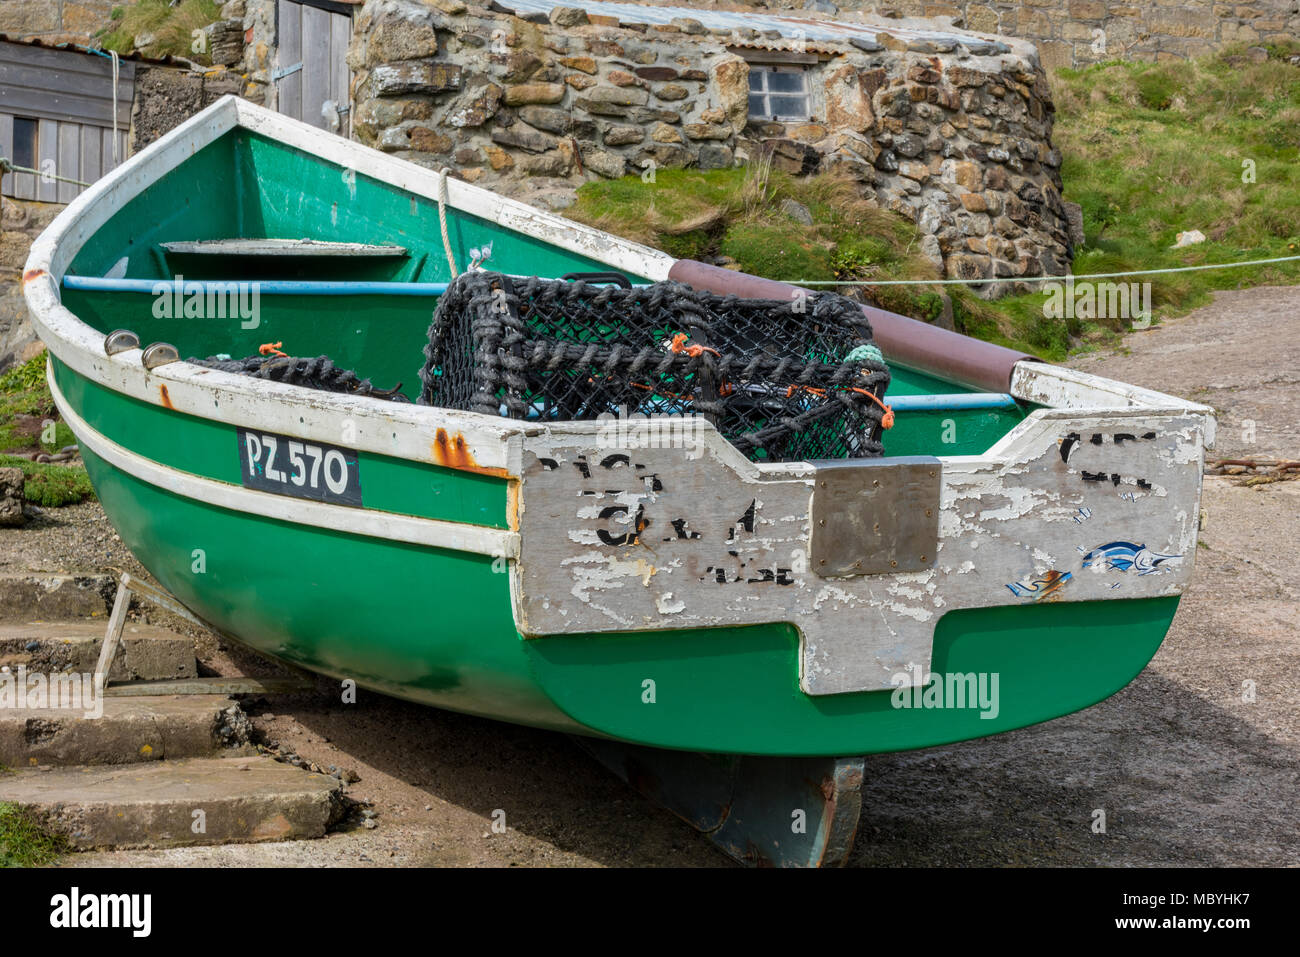 A small colourful fishing boat on a slipway on the Cornish coast at cape cornwall near st just on the penwith area lizard peninsular. Fishermen boat. - Stock Image